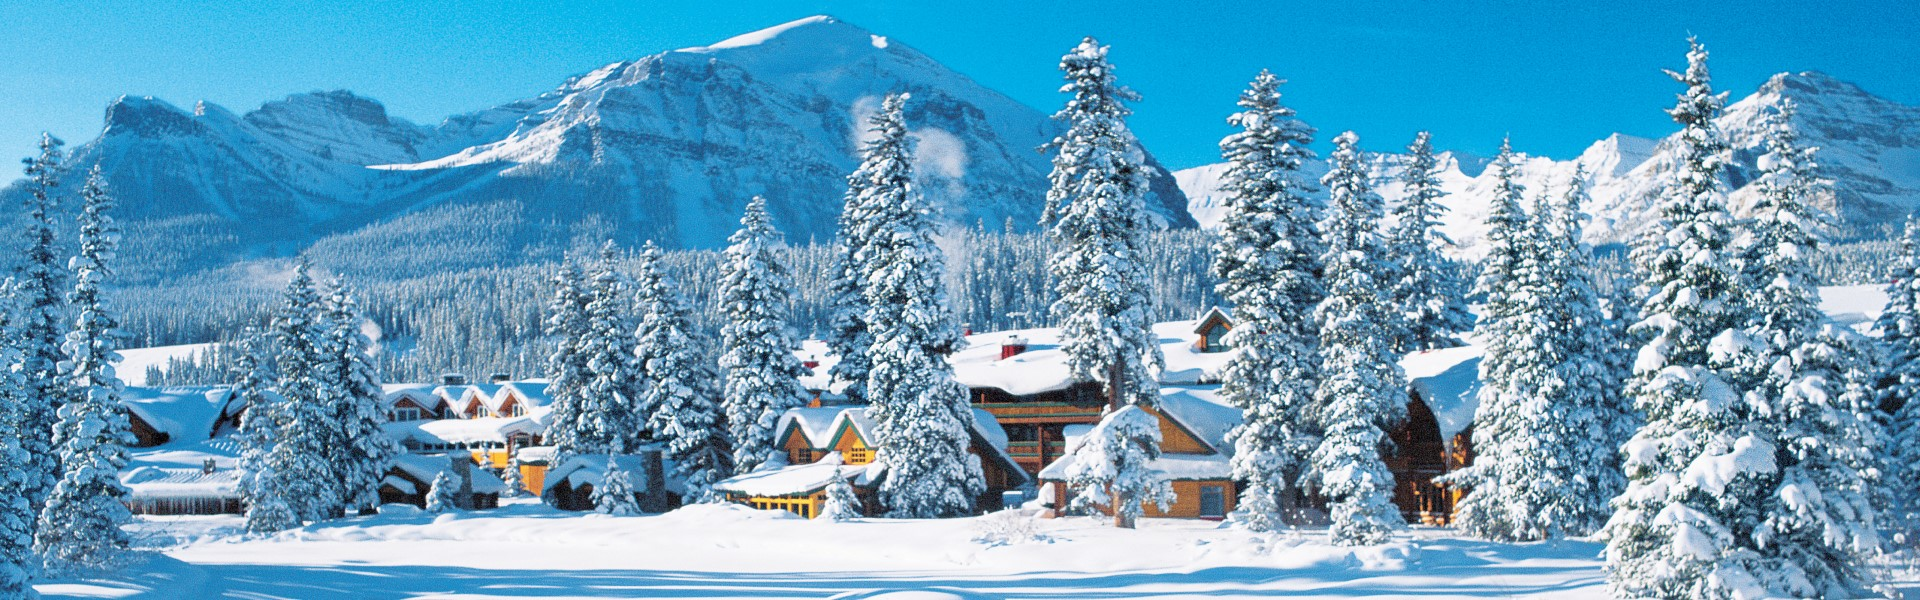 1-Day Winter Lake Louise and Yoho National Park Tour from Calgary